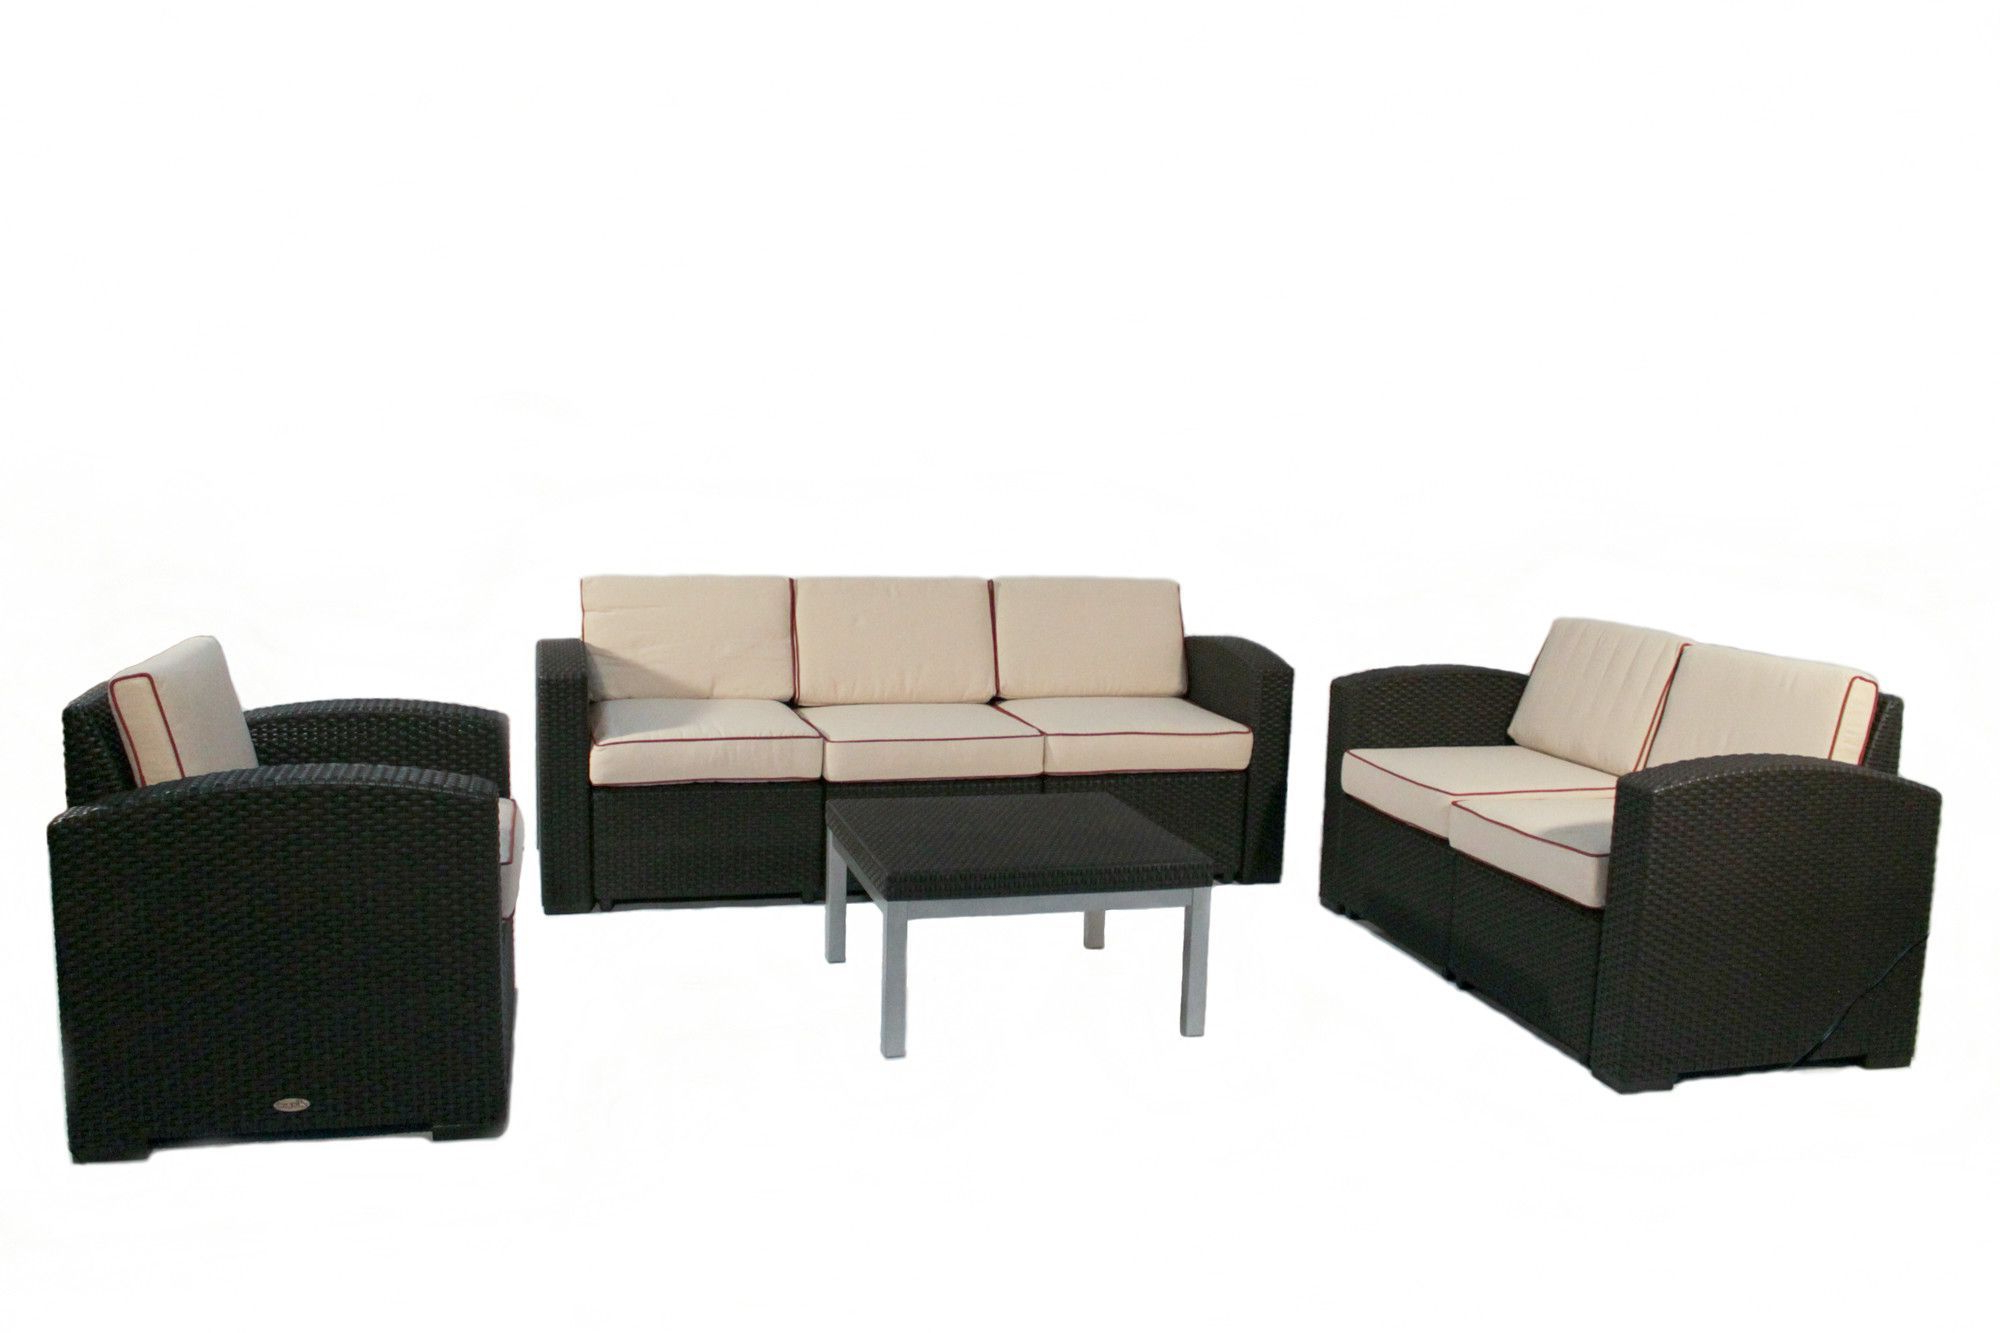 Cielo 4 Piece Seating Group With Cushion (View 4 of 20)